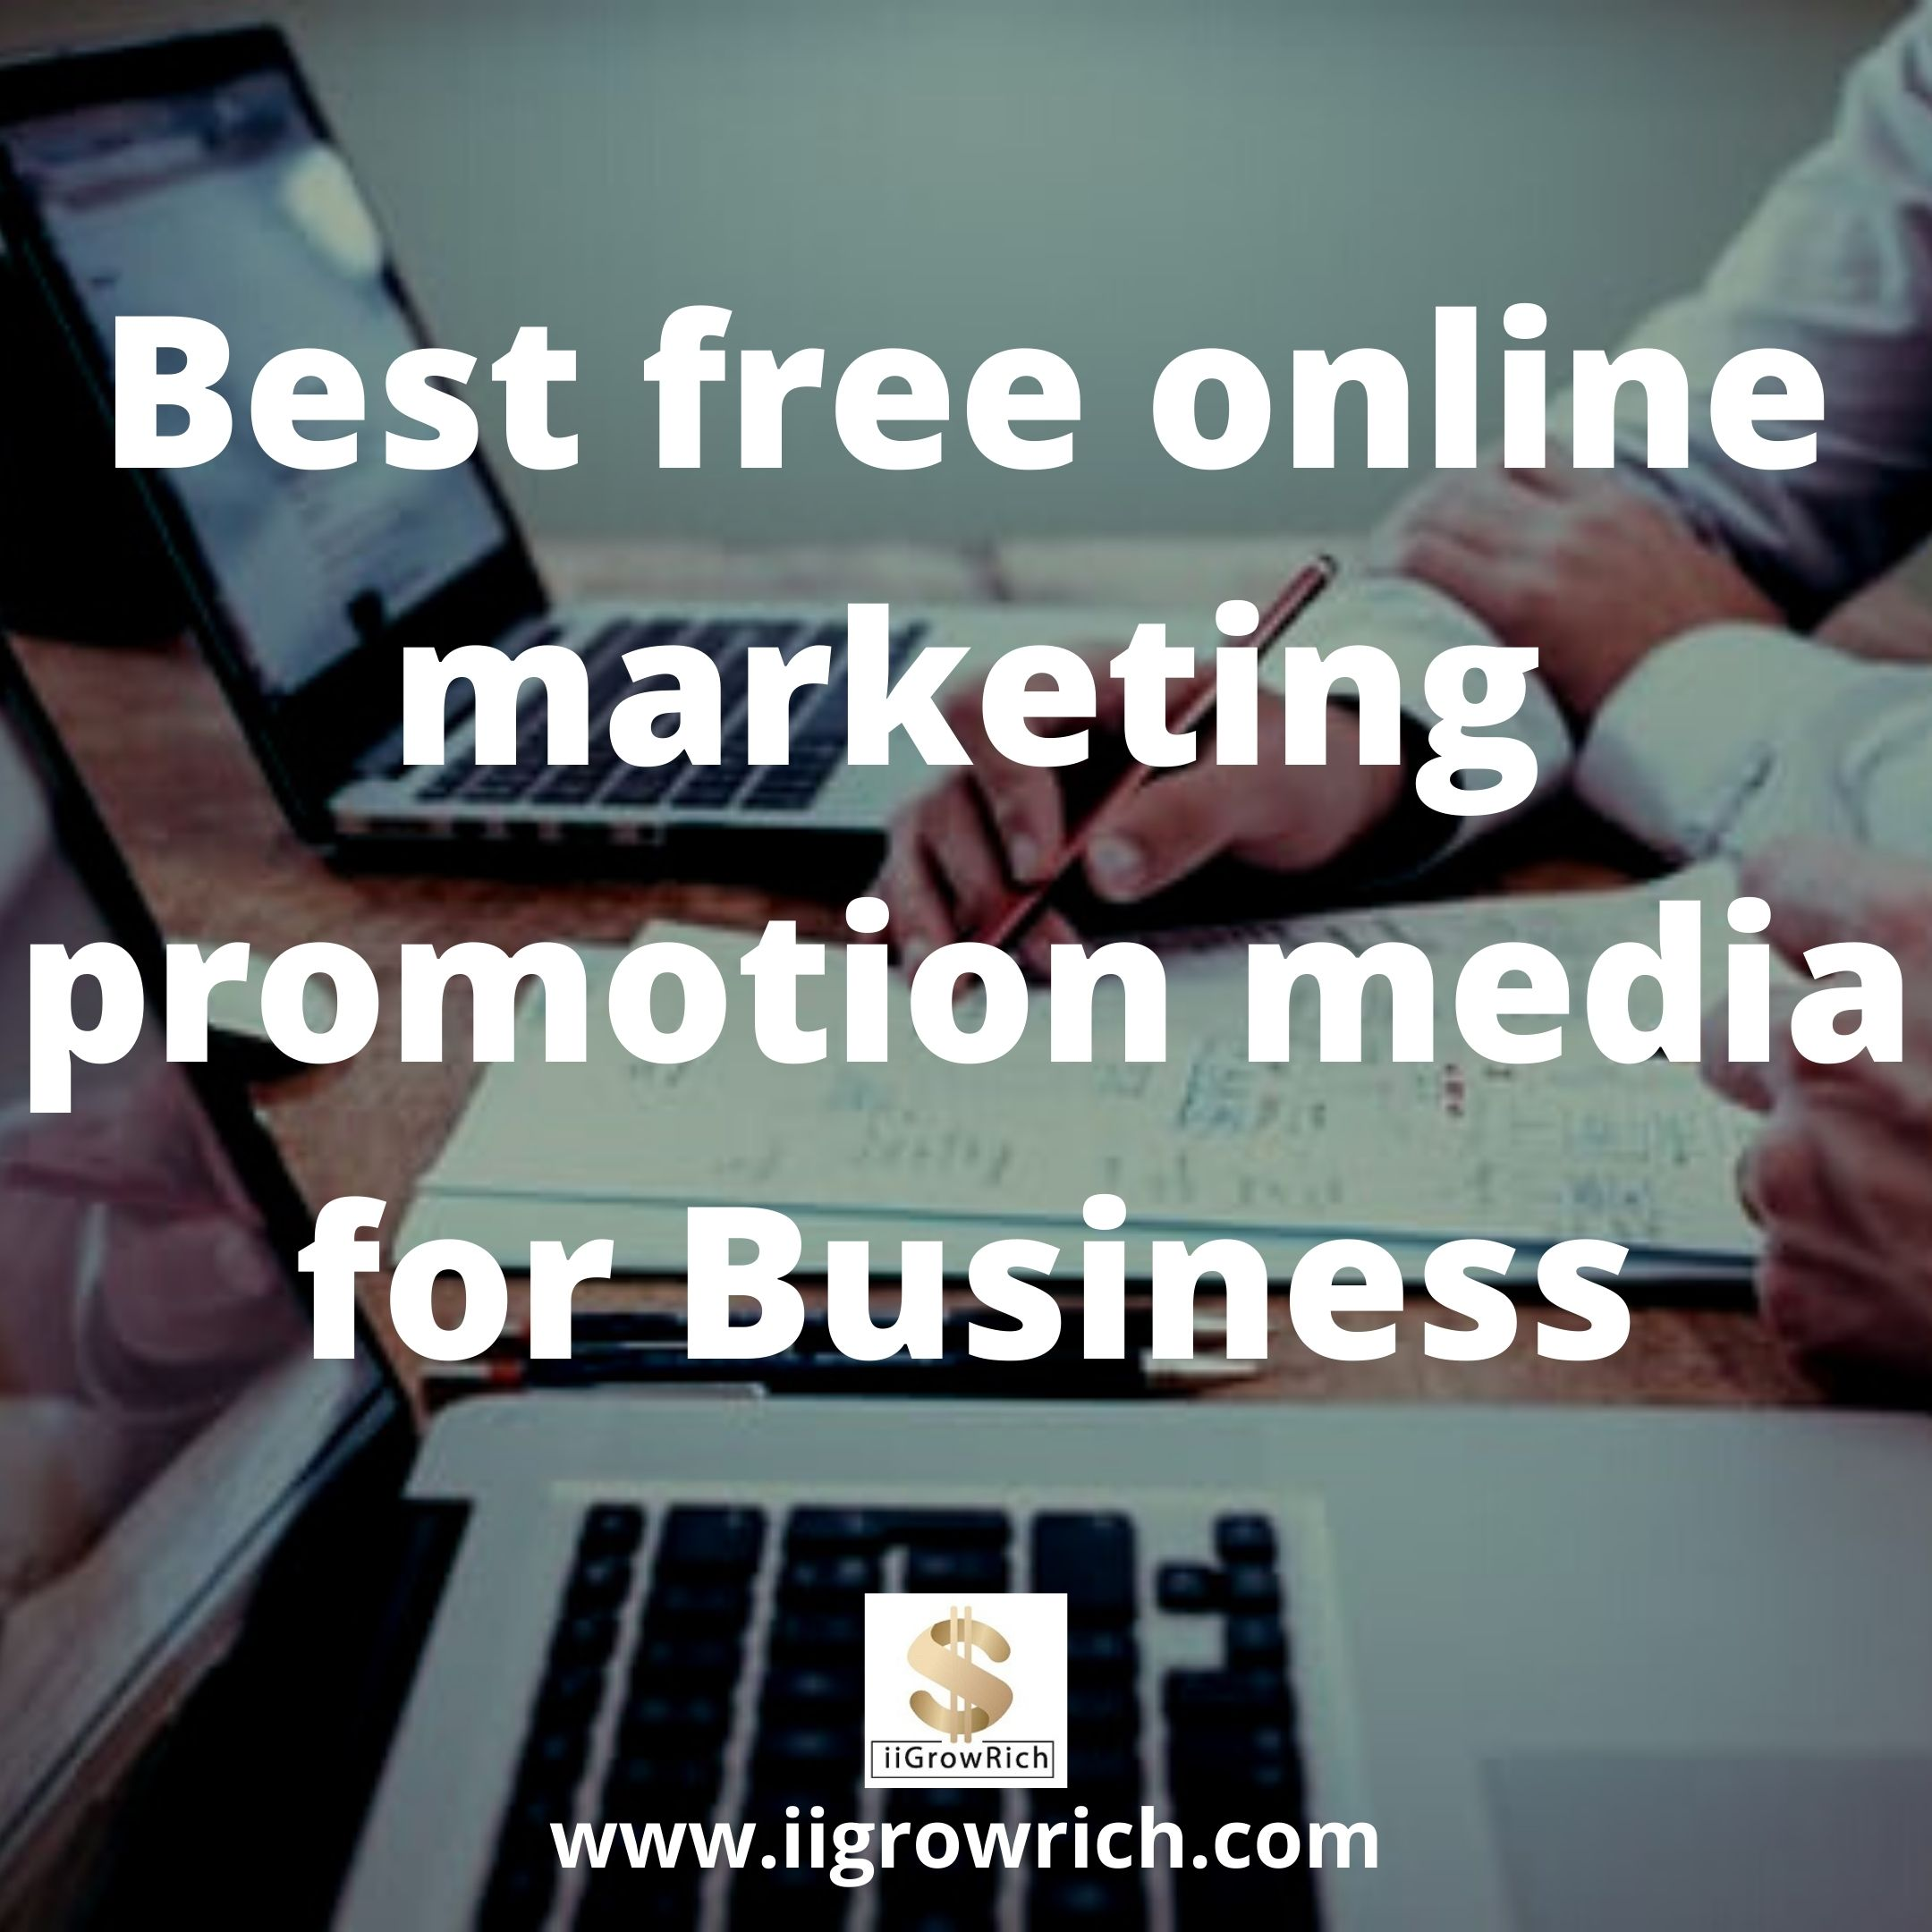 Best free online marketing promotion media for Business